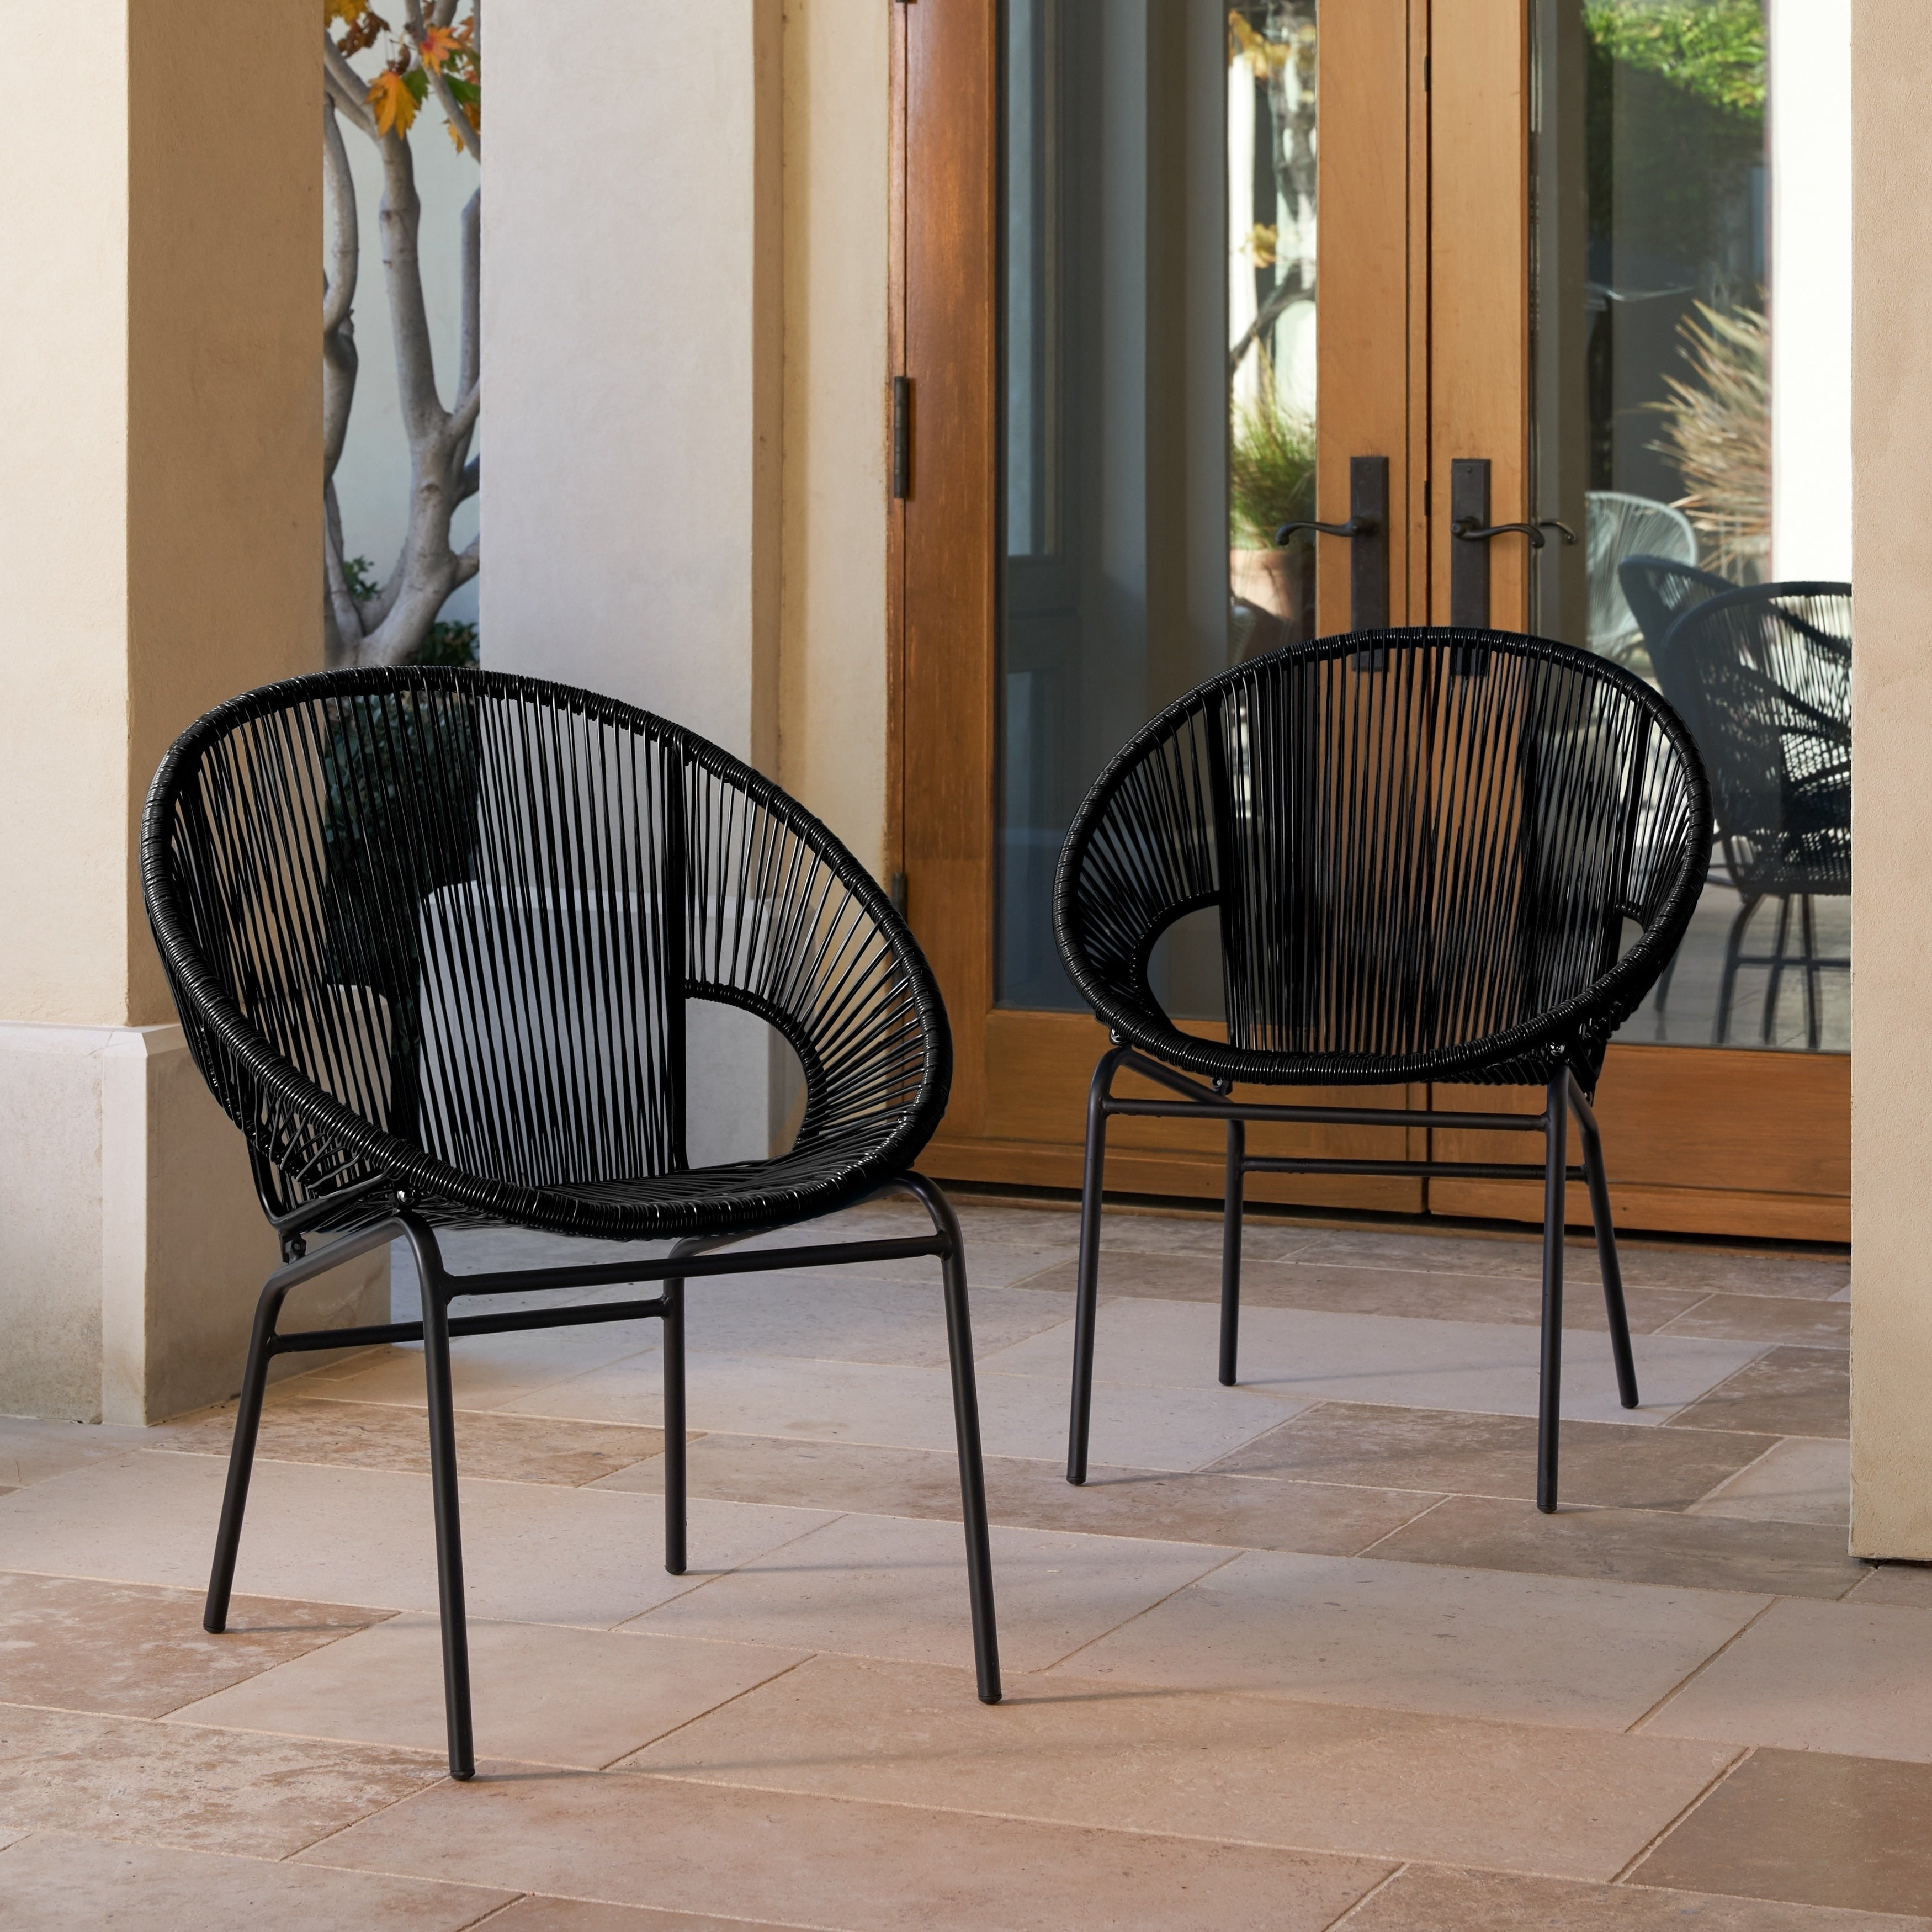 Wicker Patio Chairs In Shop Sarcelles Woven Wicker Patio Chairs By Corvus set Of 2 On Sale Free Shipping Today Overstockcom 17805619